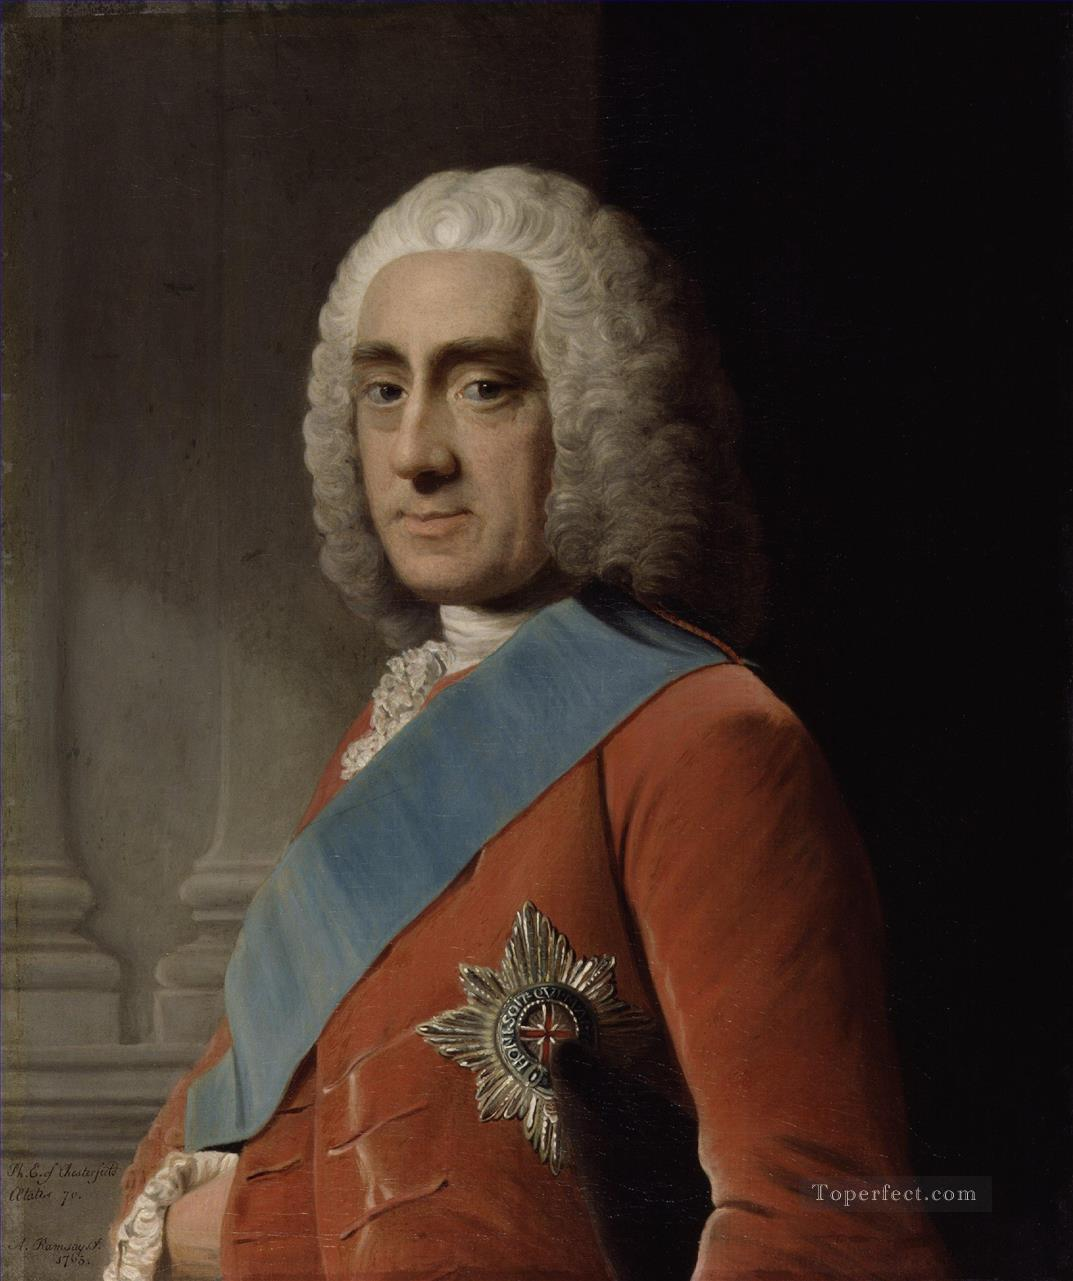 philip dormer stanhope 4th earl of chesterfield Allan Ramsay Portraiture Classicism Oil Paintings